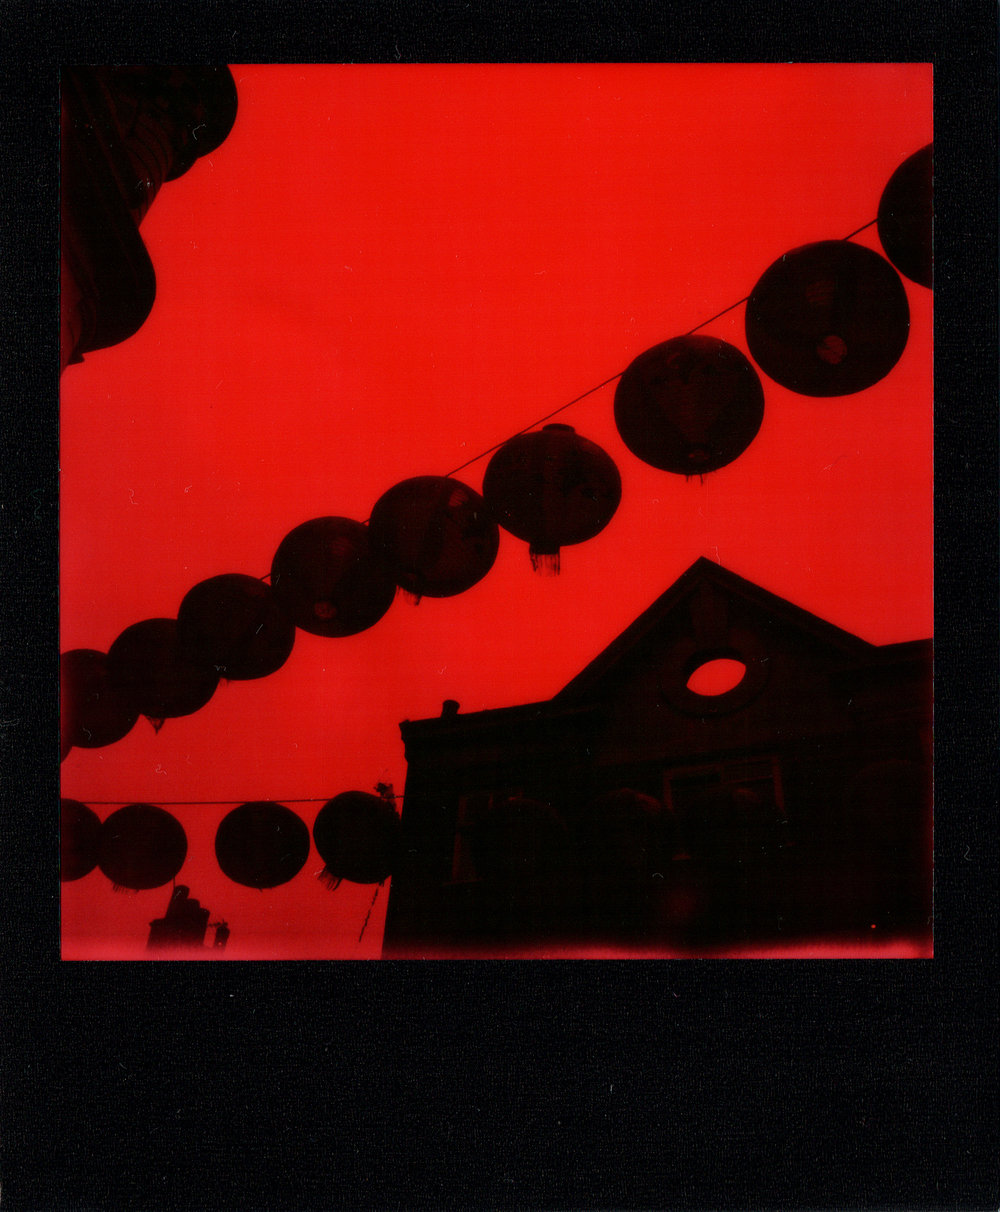 Enigma In China Town | Polaroid SLR680 | Impossible Project Black & Red Duochrome | Claudio Gomboli